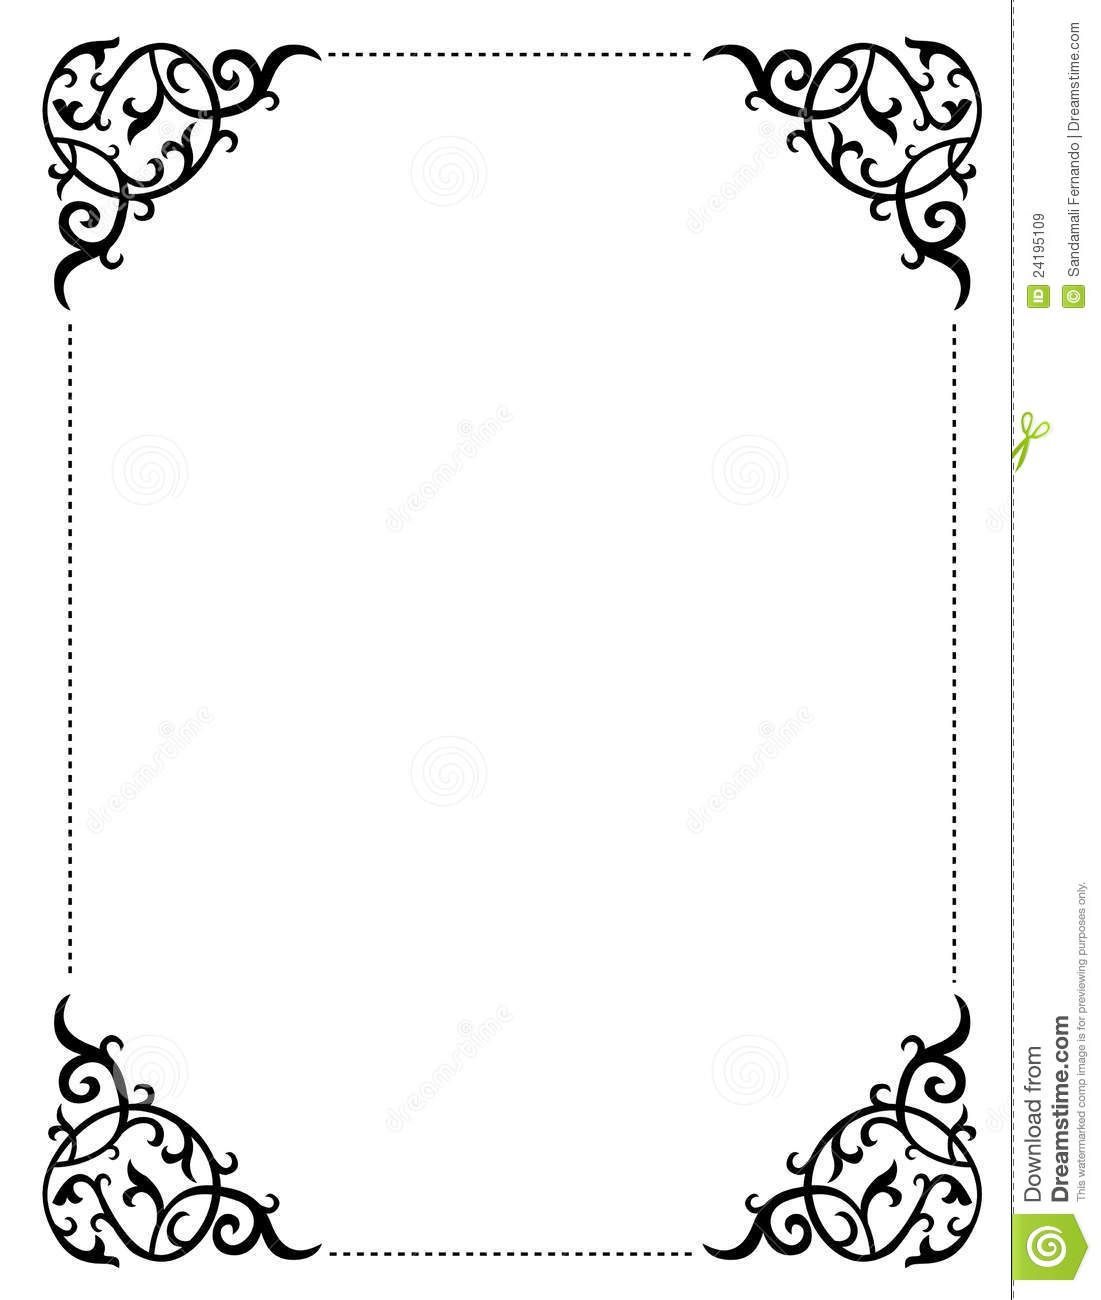 free printable wedding clip art borders and backgrounds invitation [ 1101 x 1300 Pixel ]